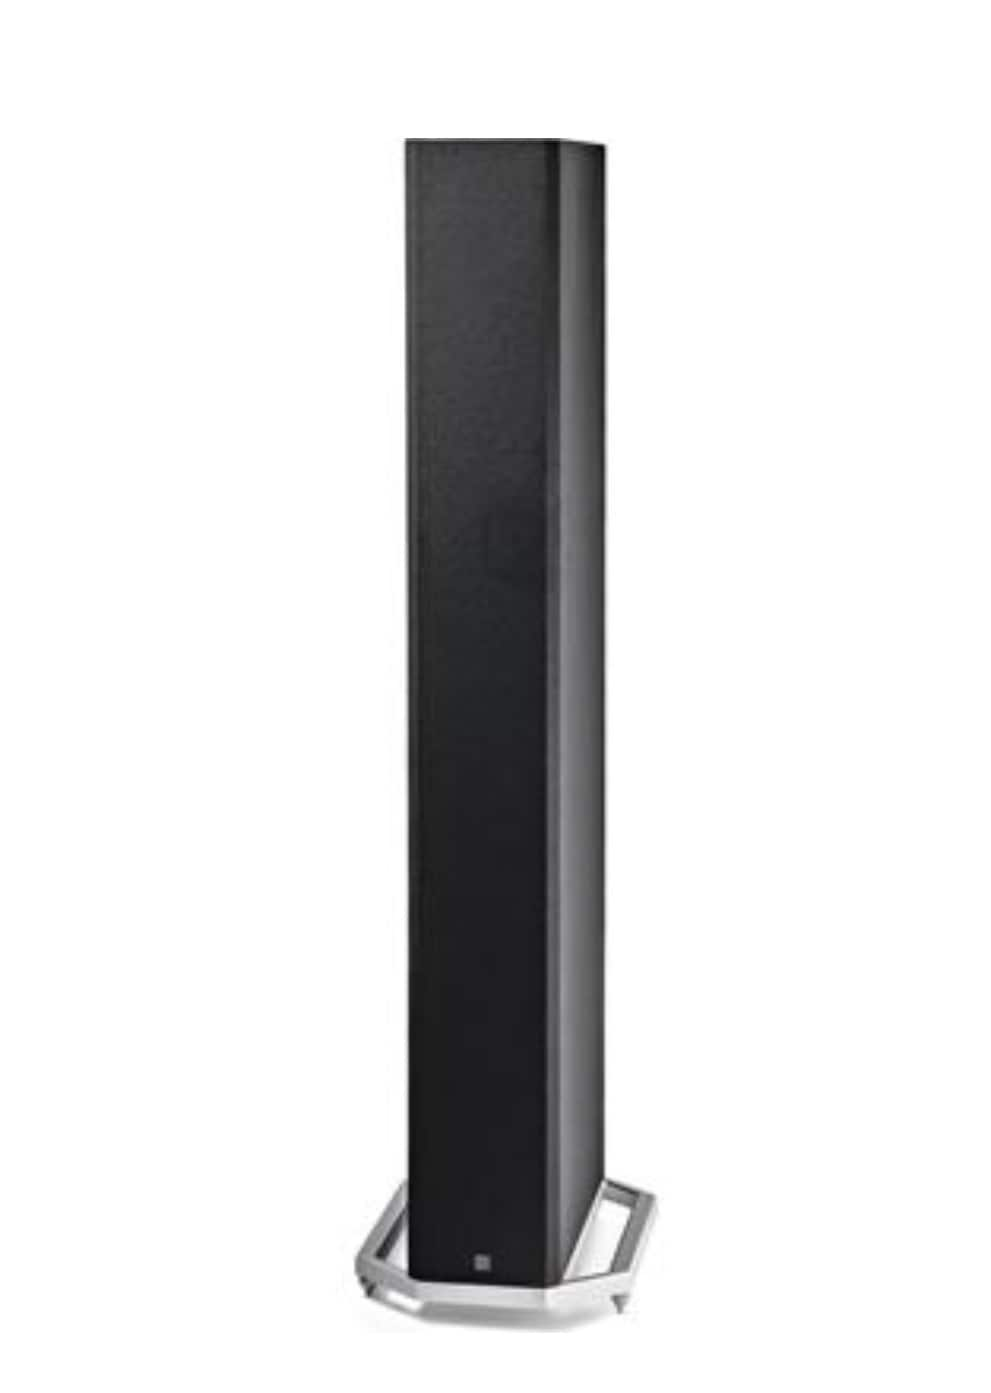 Definitive Technology BP9060 Bipolar Tower Speaker with Integrated 10 inch Powered Subwoofer ($950 each+ Free Shipping)